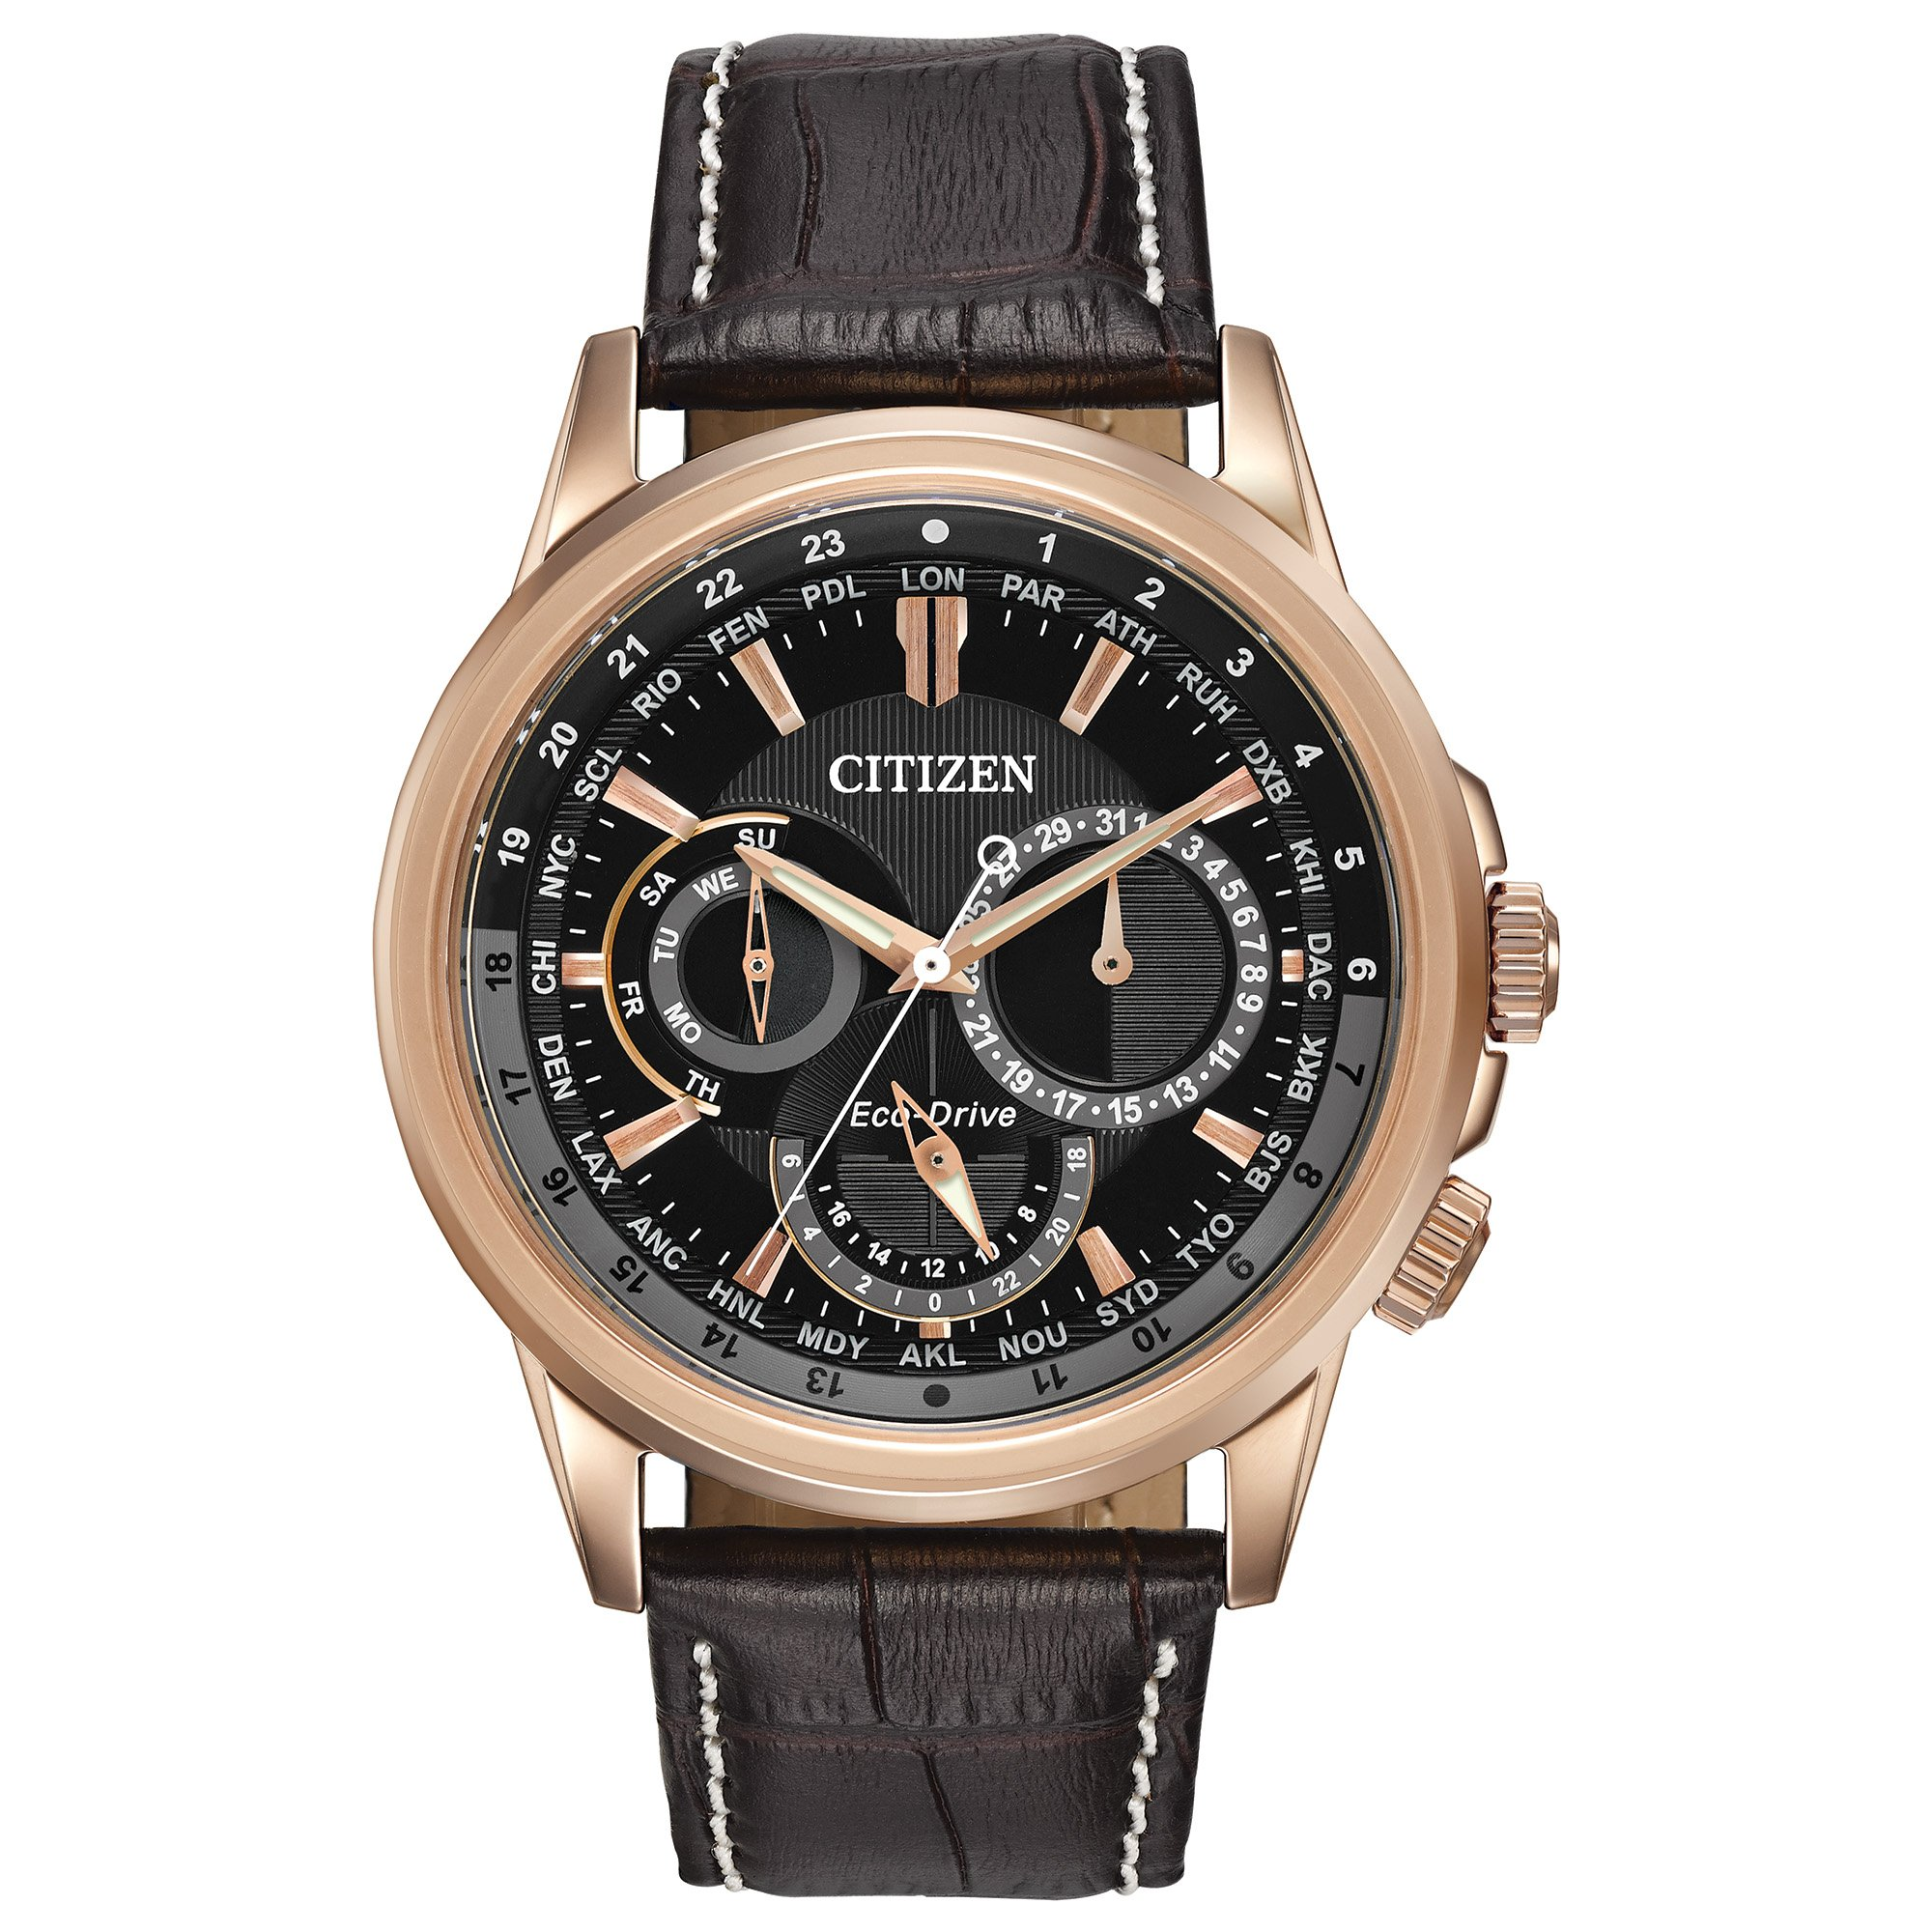 Citizen Men's Eco-Drive Stainless Steel Watch with Day/Date, BU2023-04E by Citizen